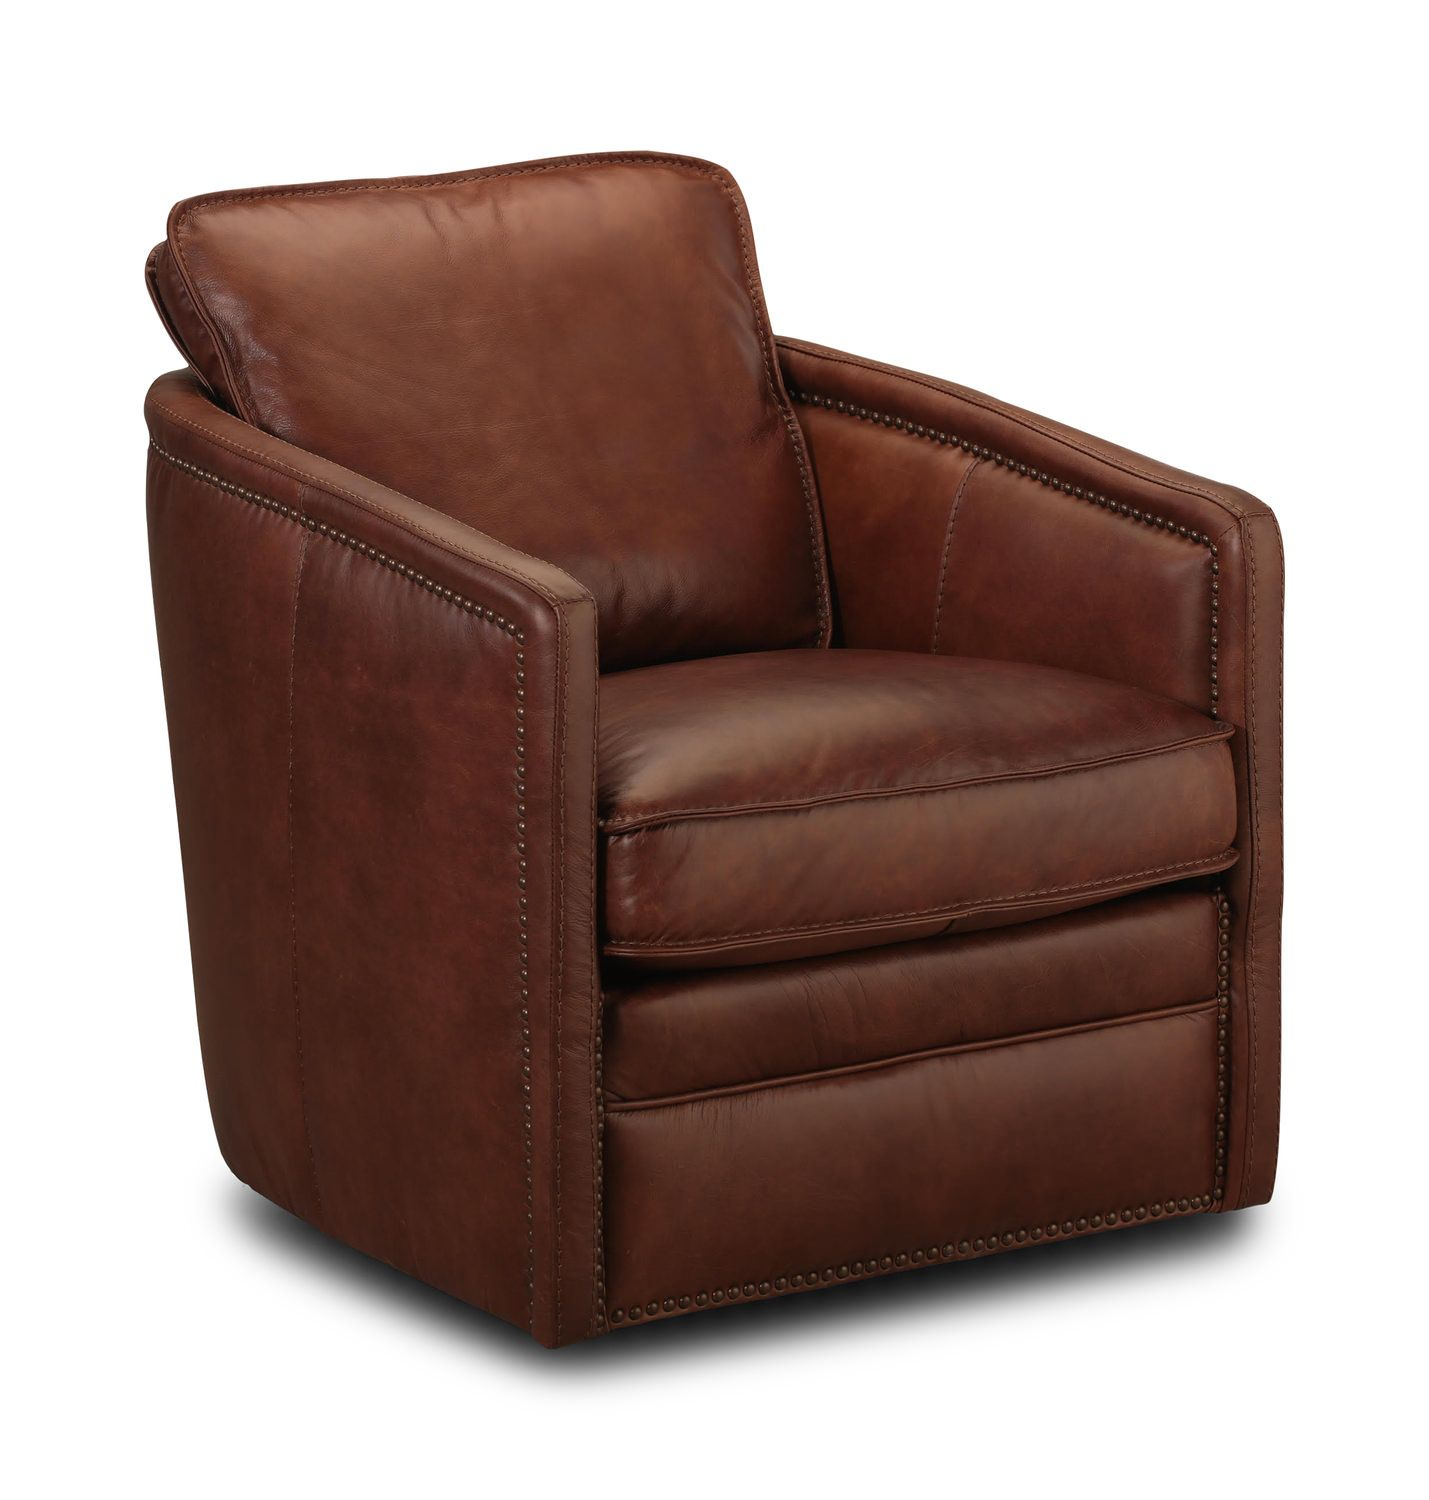 Pivot Leather Swivel Chair Leather swivel chair, Hom